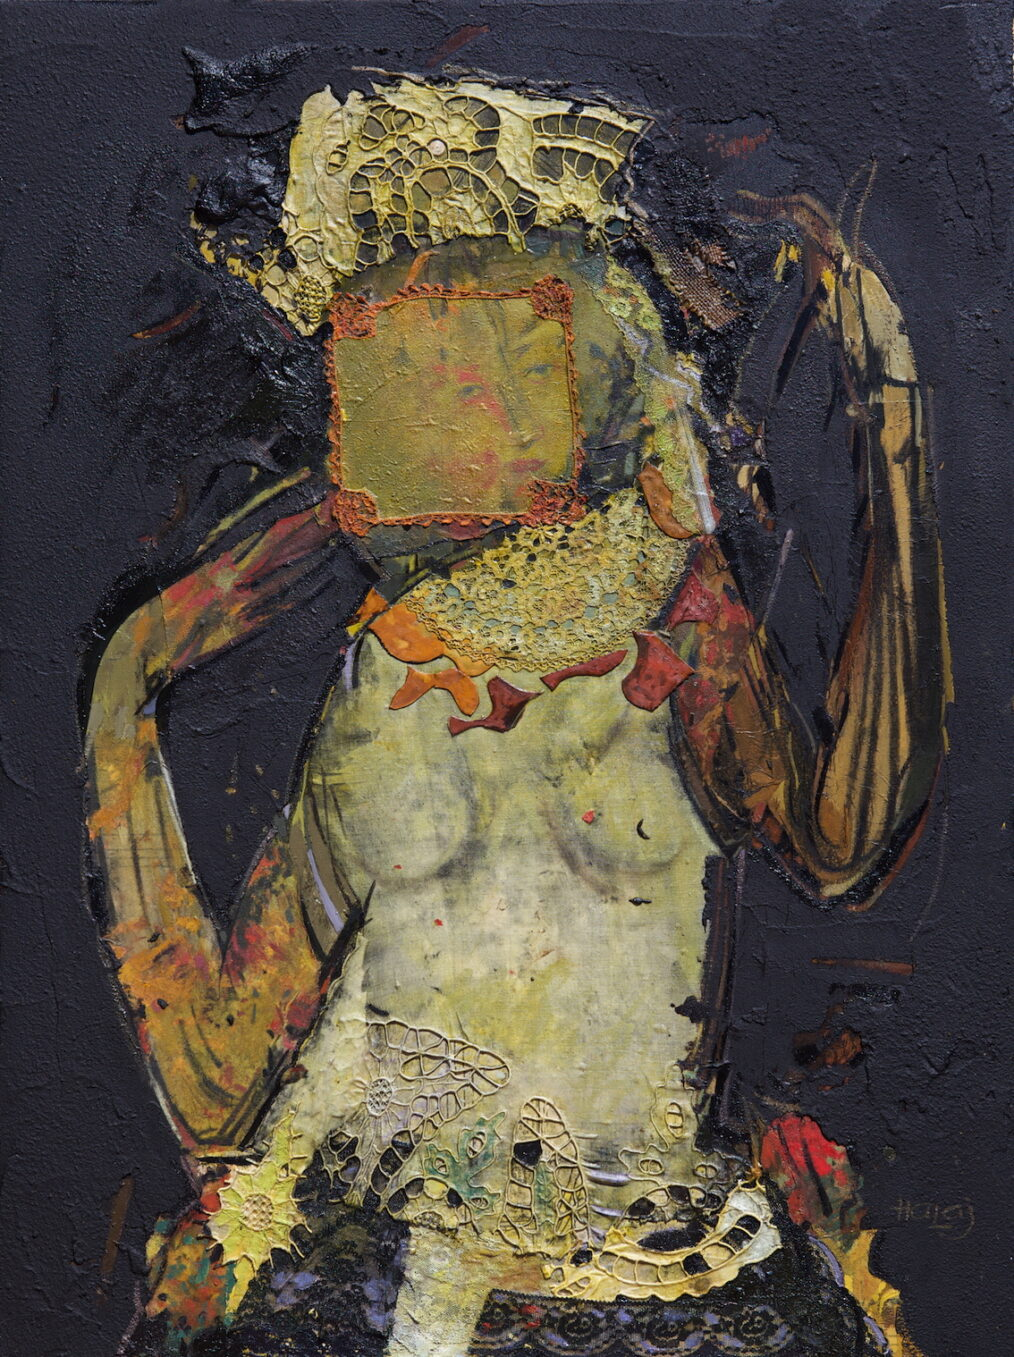 """""""Girl From Middle East"""" 2013 Oil, emulsion, textile, tar, mixed media on linen, 40x30 inches. (76.2x101.6 cm) Private Collection Los Angeles, CA"""